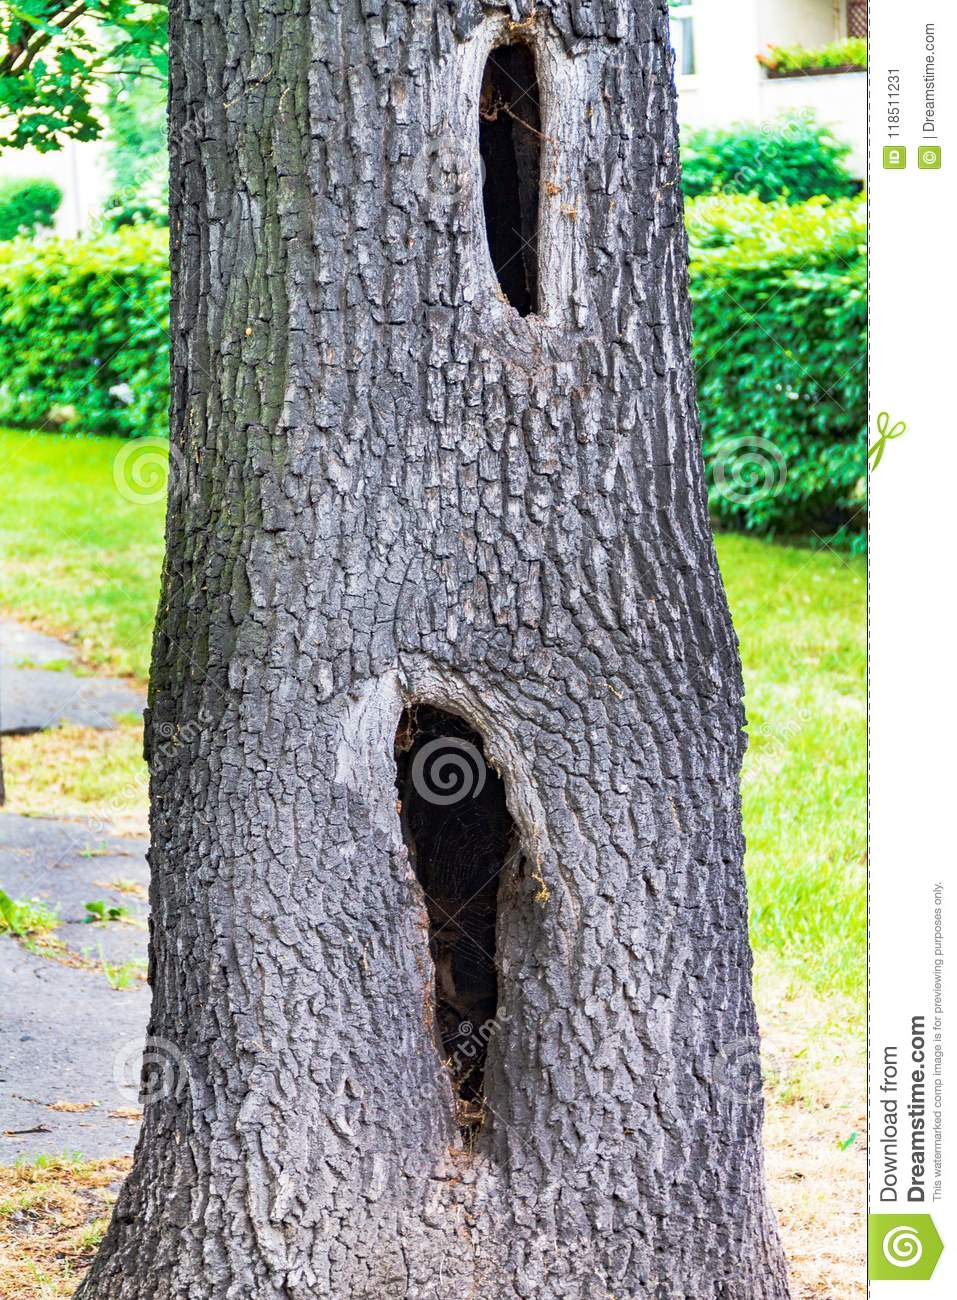 A hollow in a tree, a diseased tree, a hole in the bark